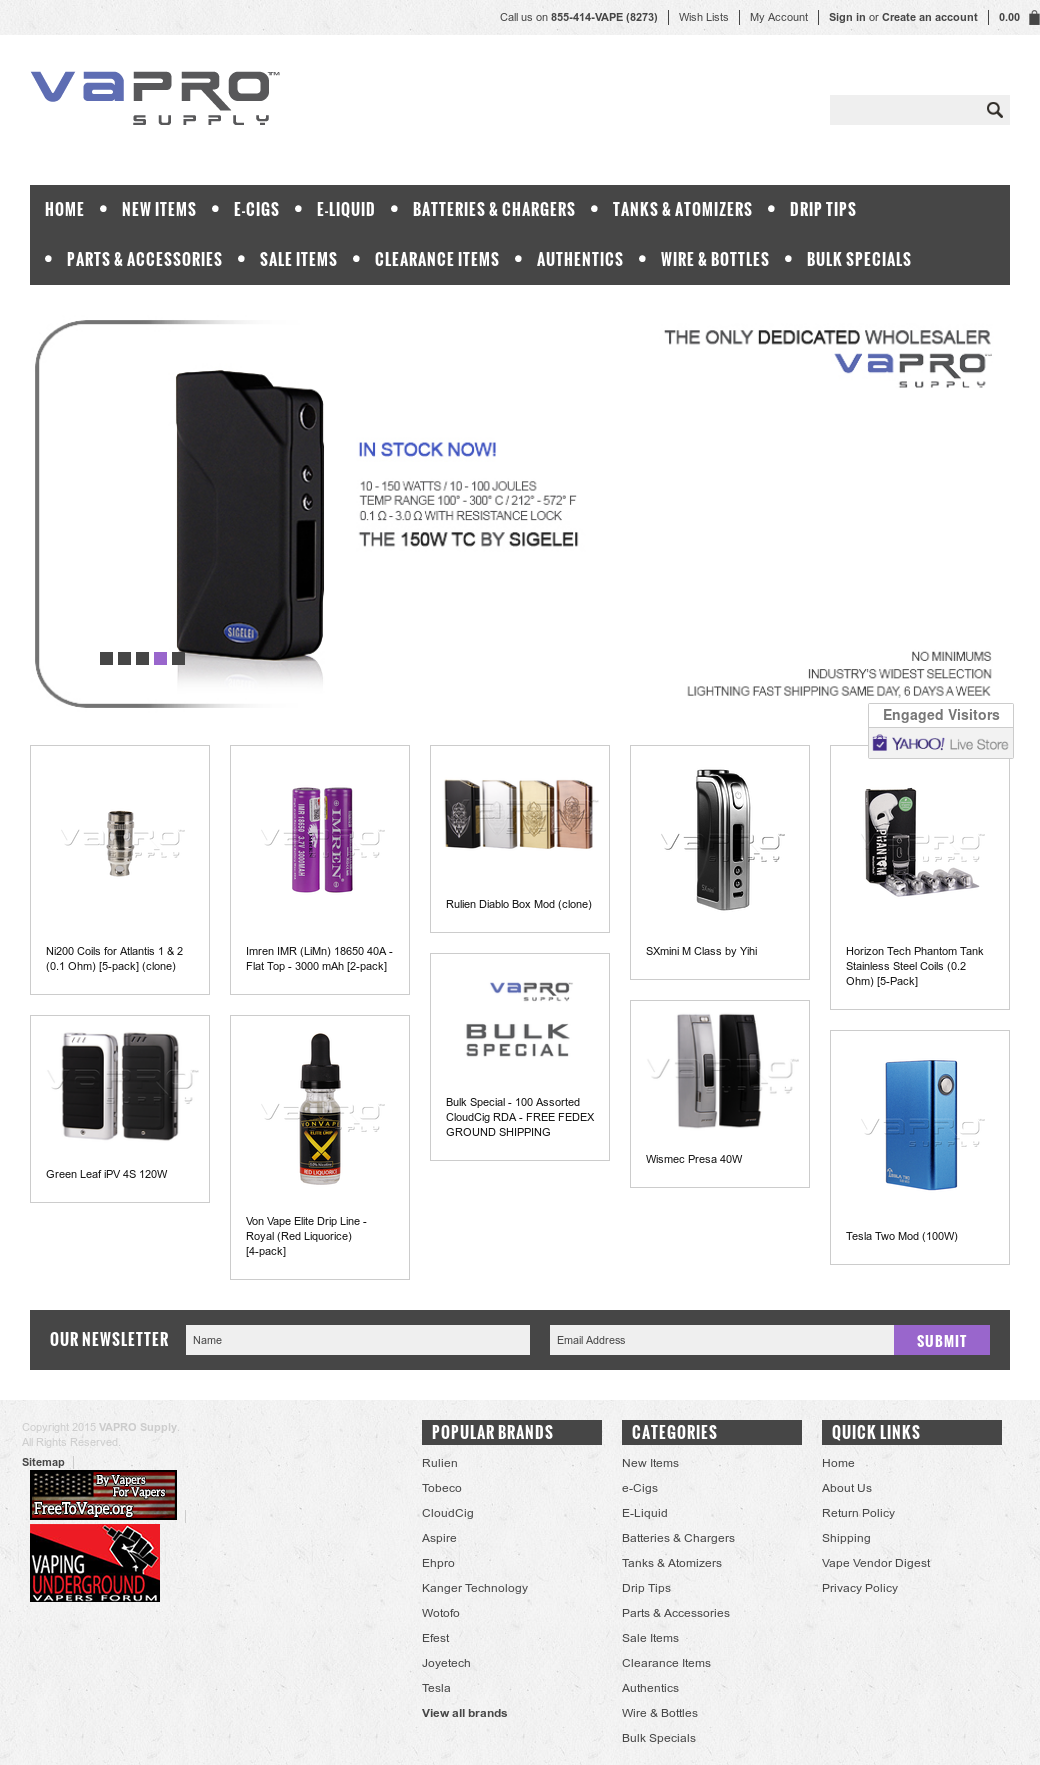 Vapro Supply Competitors, Revenue and Employees - Owler